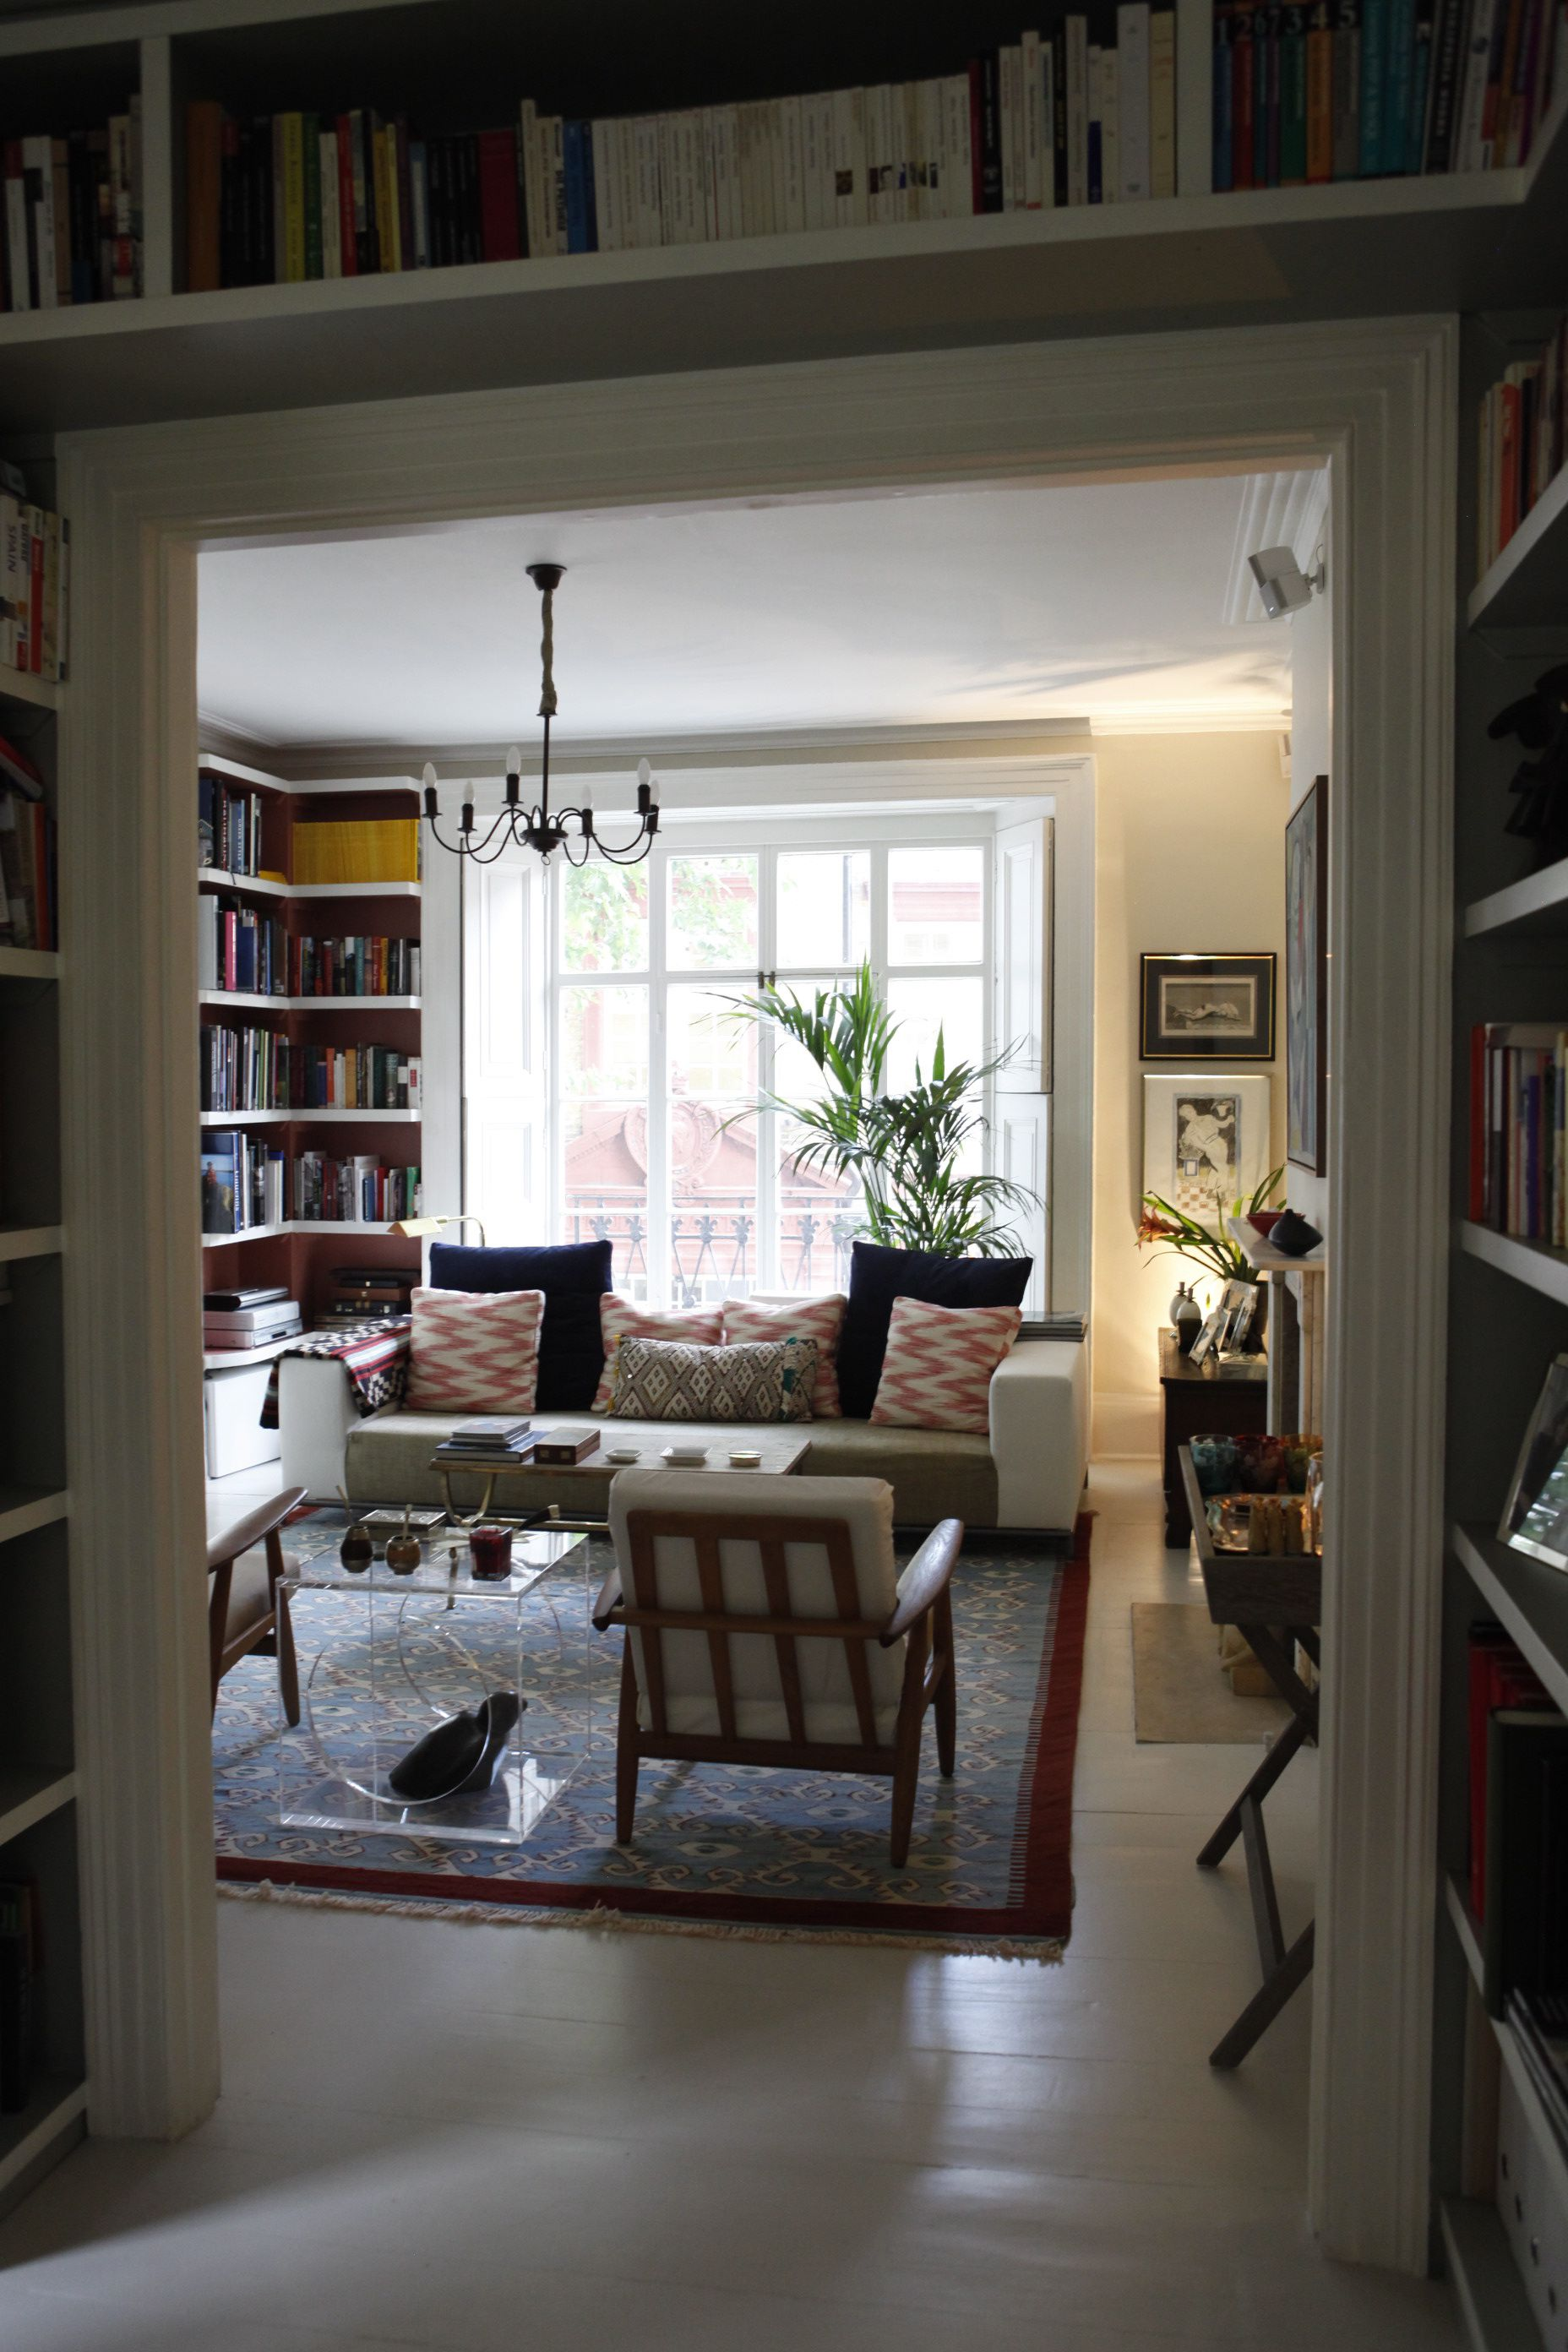 Bookshelves sit above door leading from study